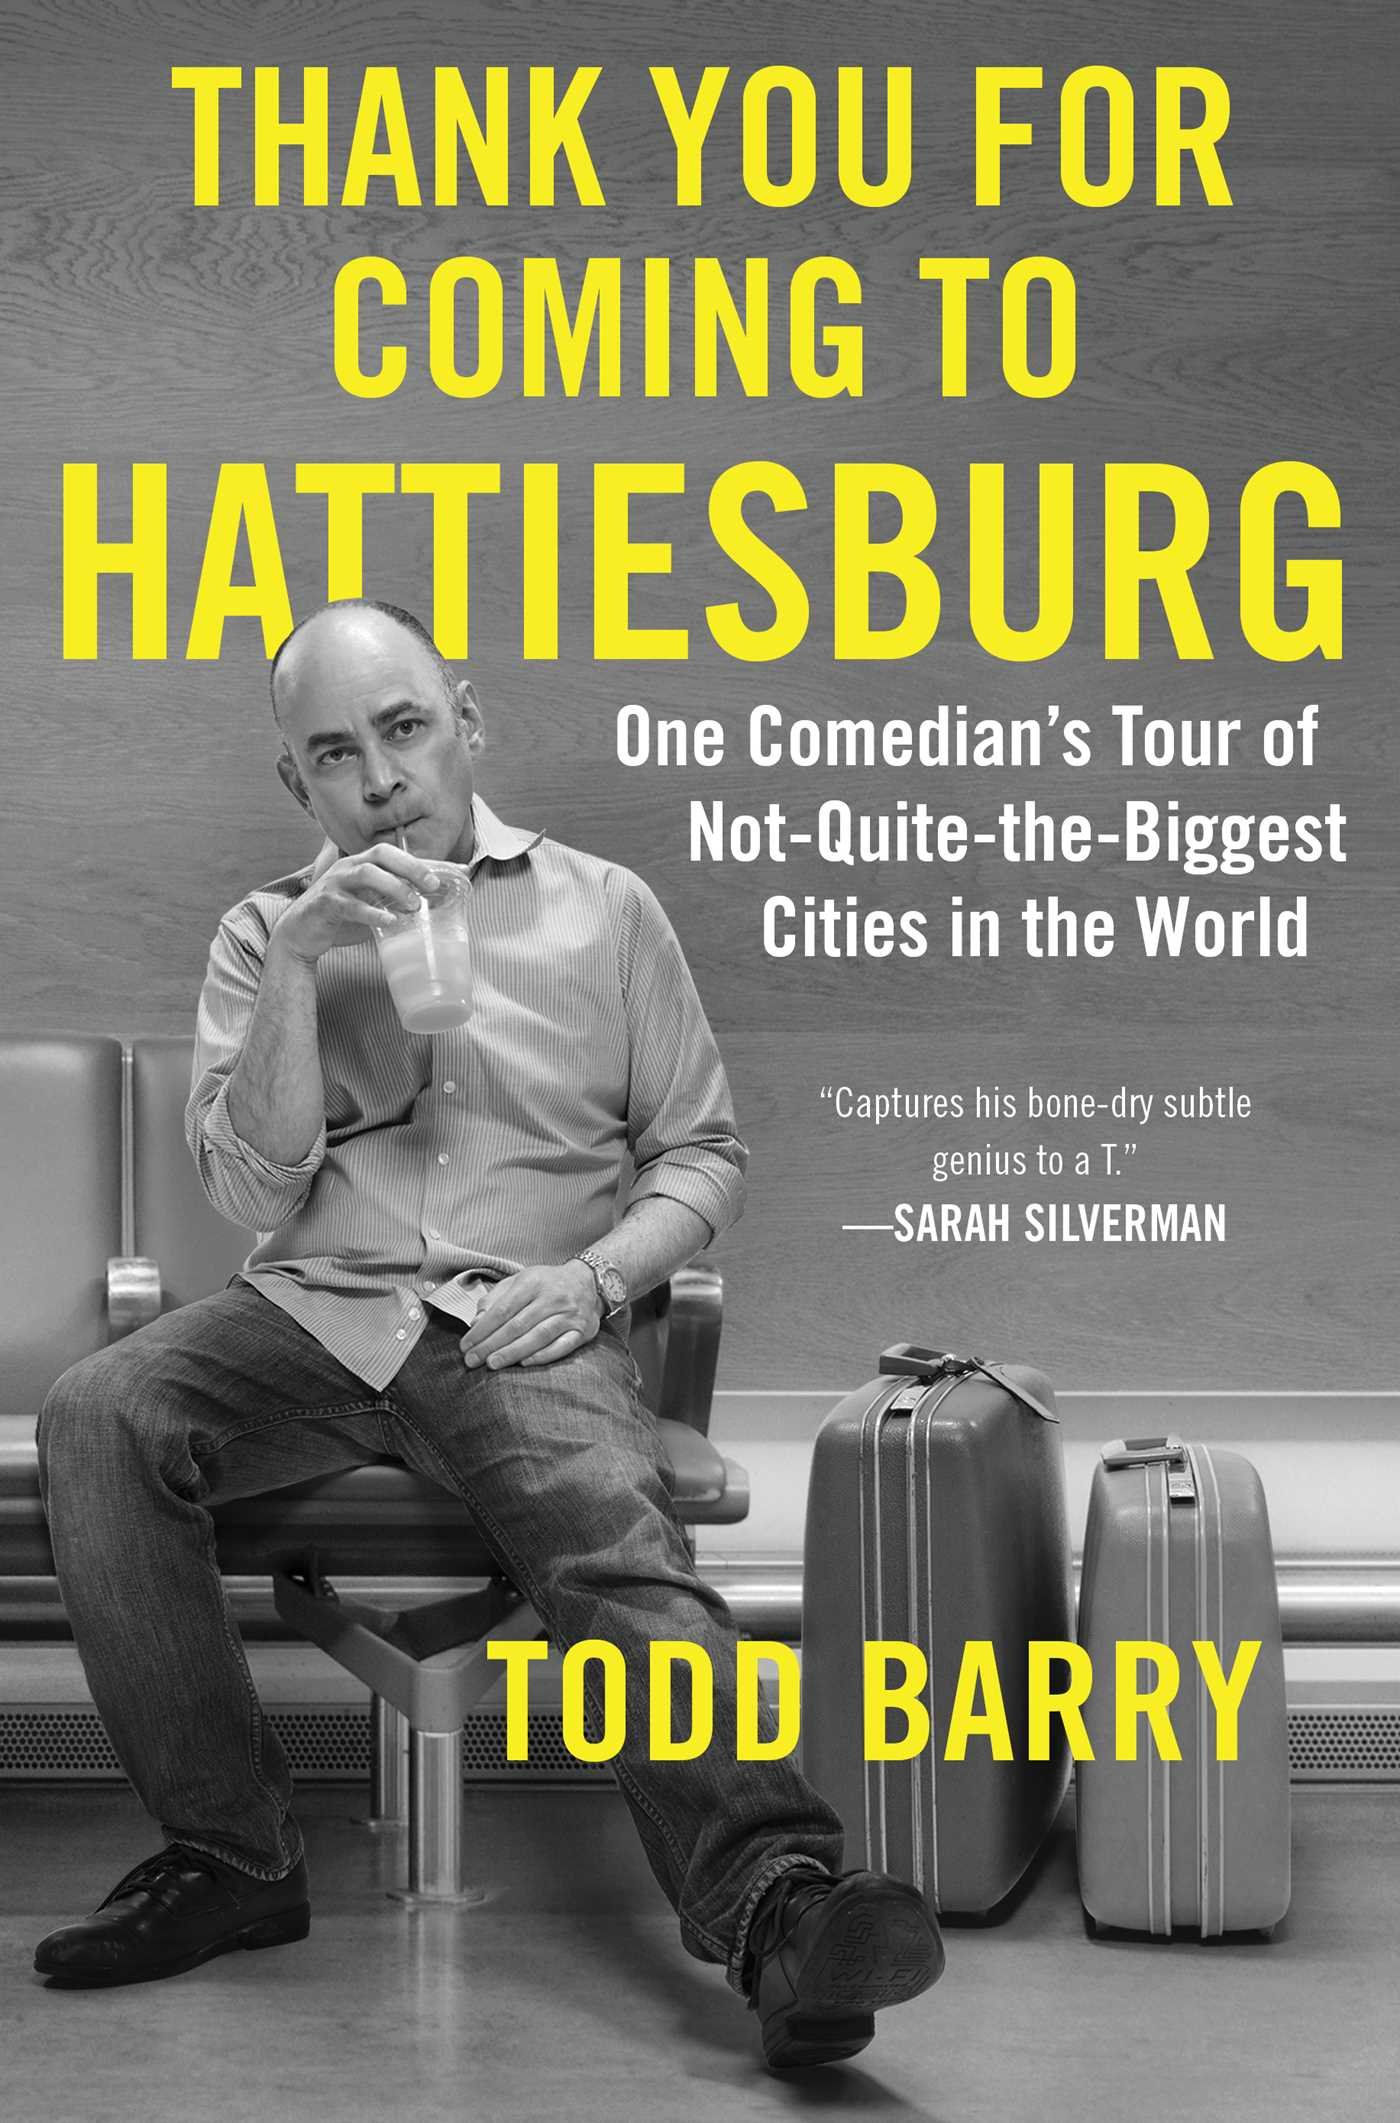 The coloring book review colin quinn - Thank You For Coming To Hattiesburg One Comedian S Tour Of Not Quite The Biggest Cities In The World Todd Barry 9781501117428 Amazon Com Books